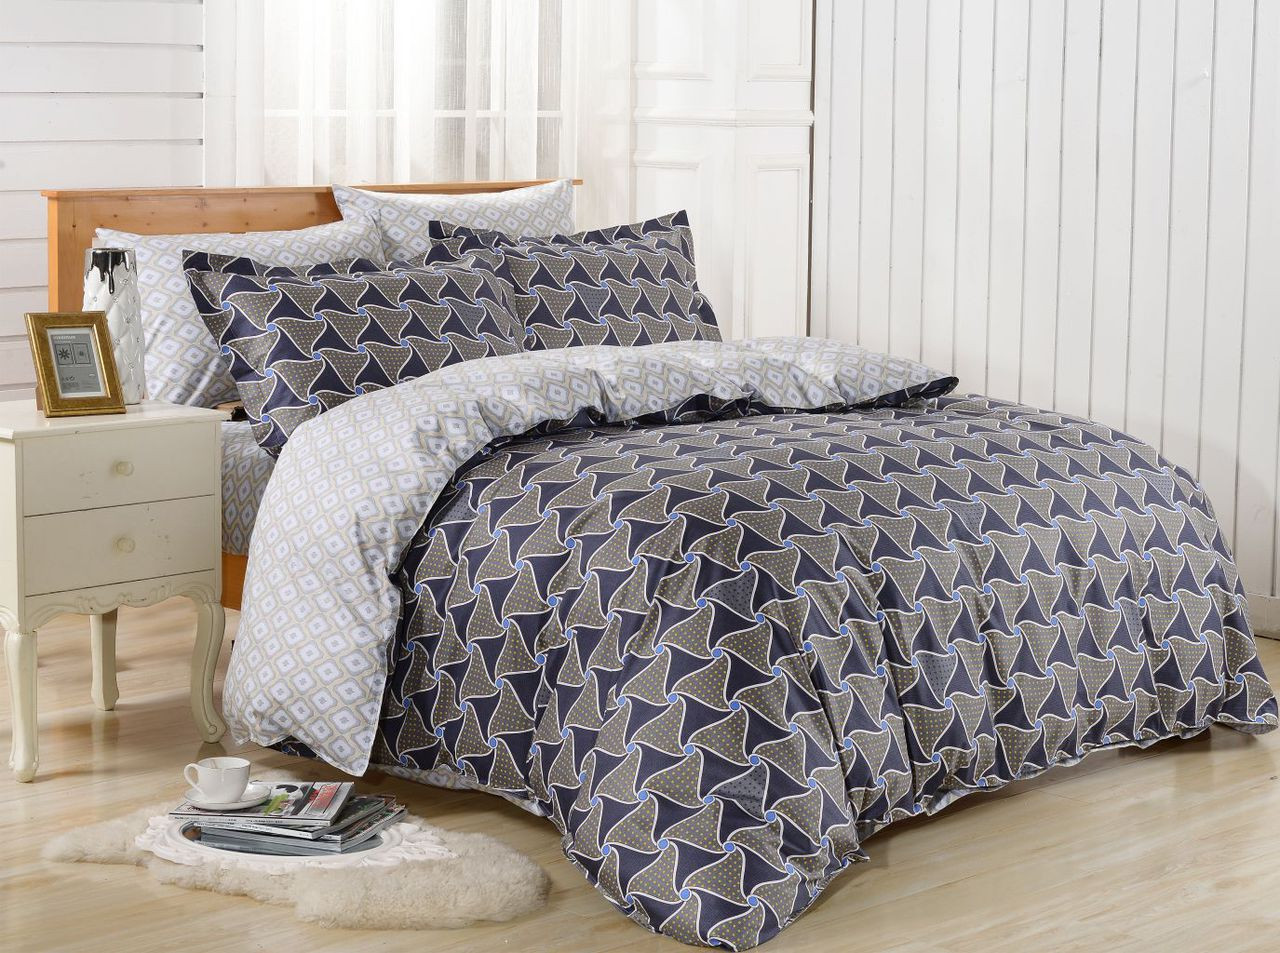 DM630Q Duvet Cover  Set, Dolce Mela Epidavros Bedding